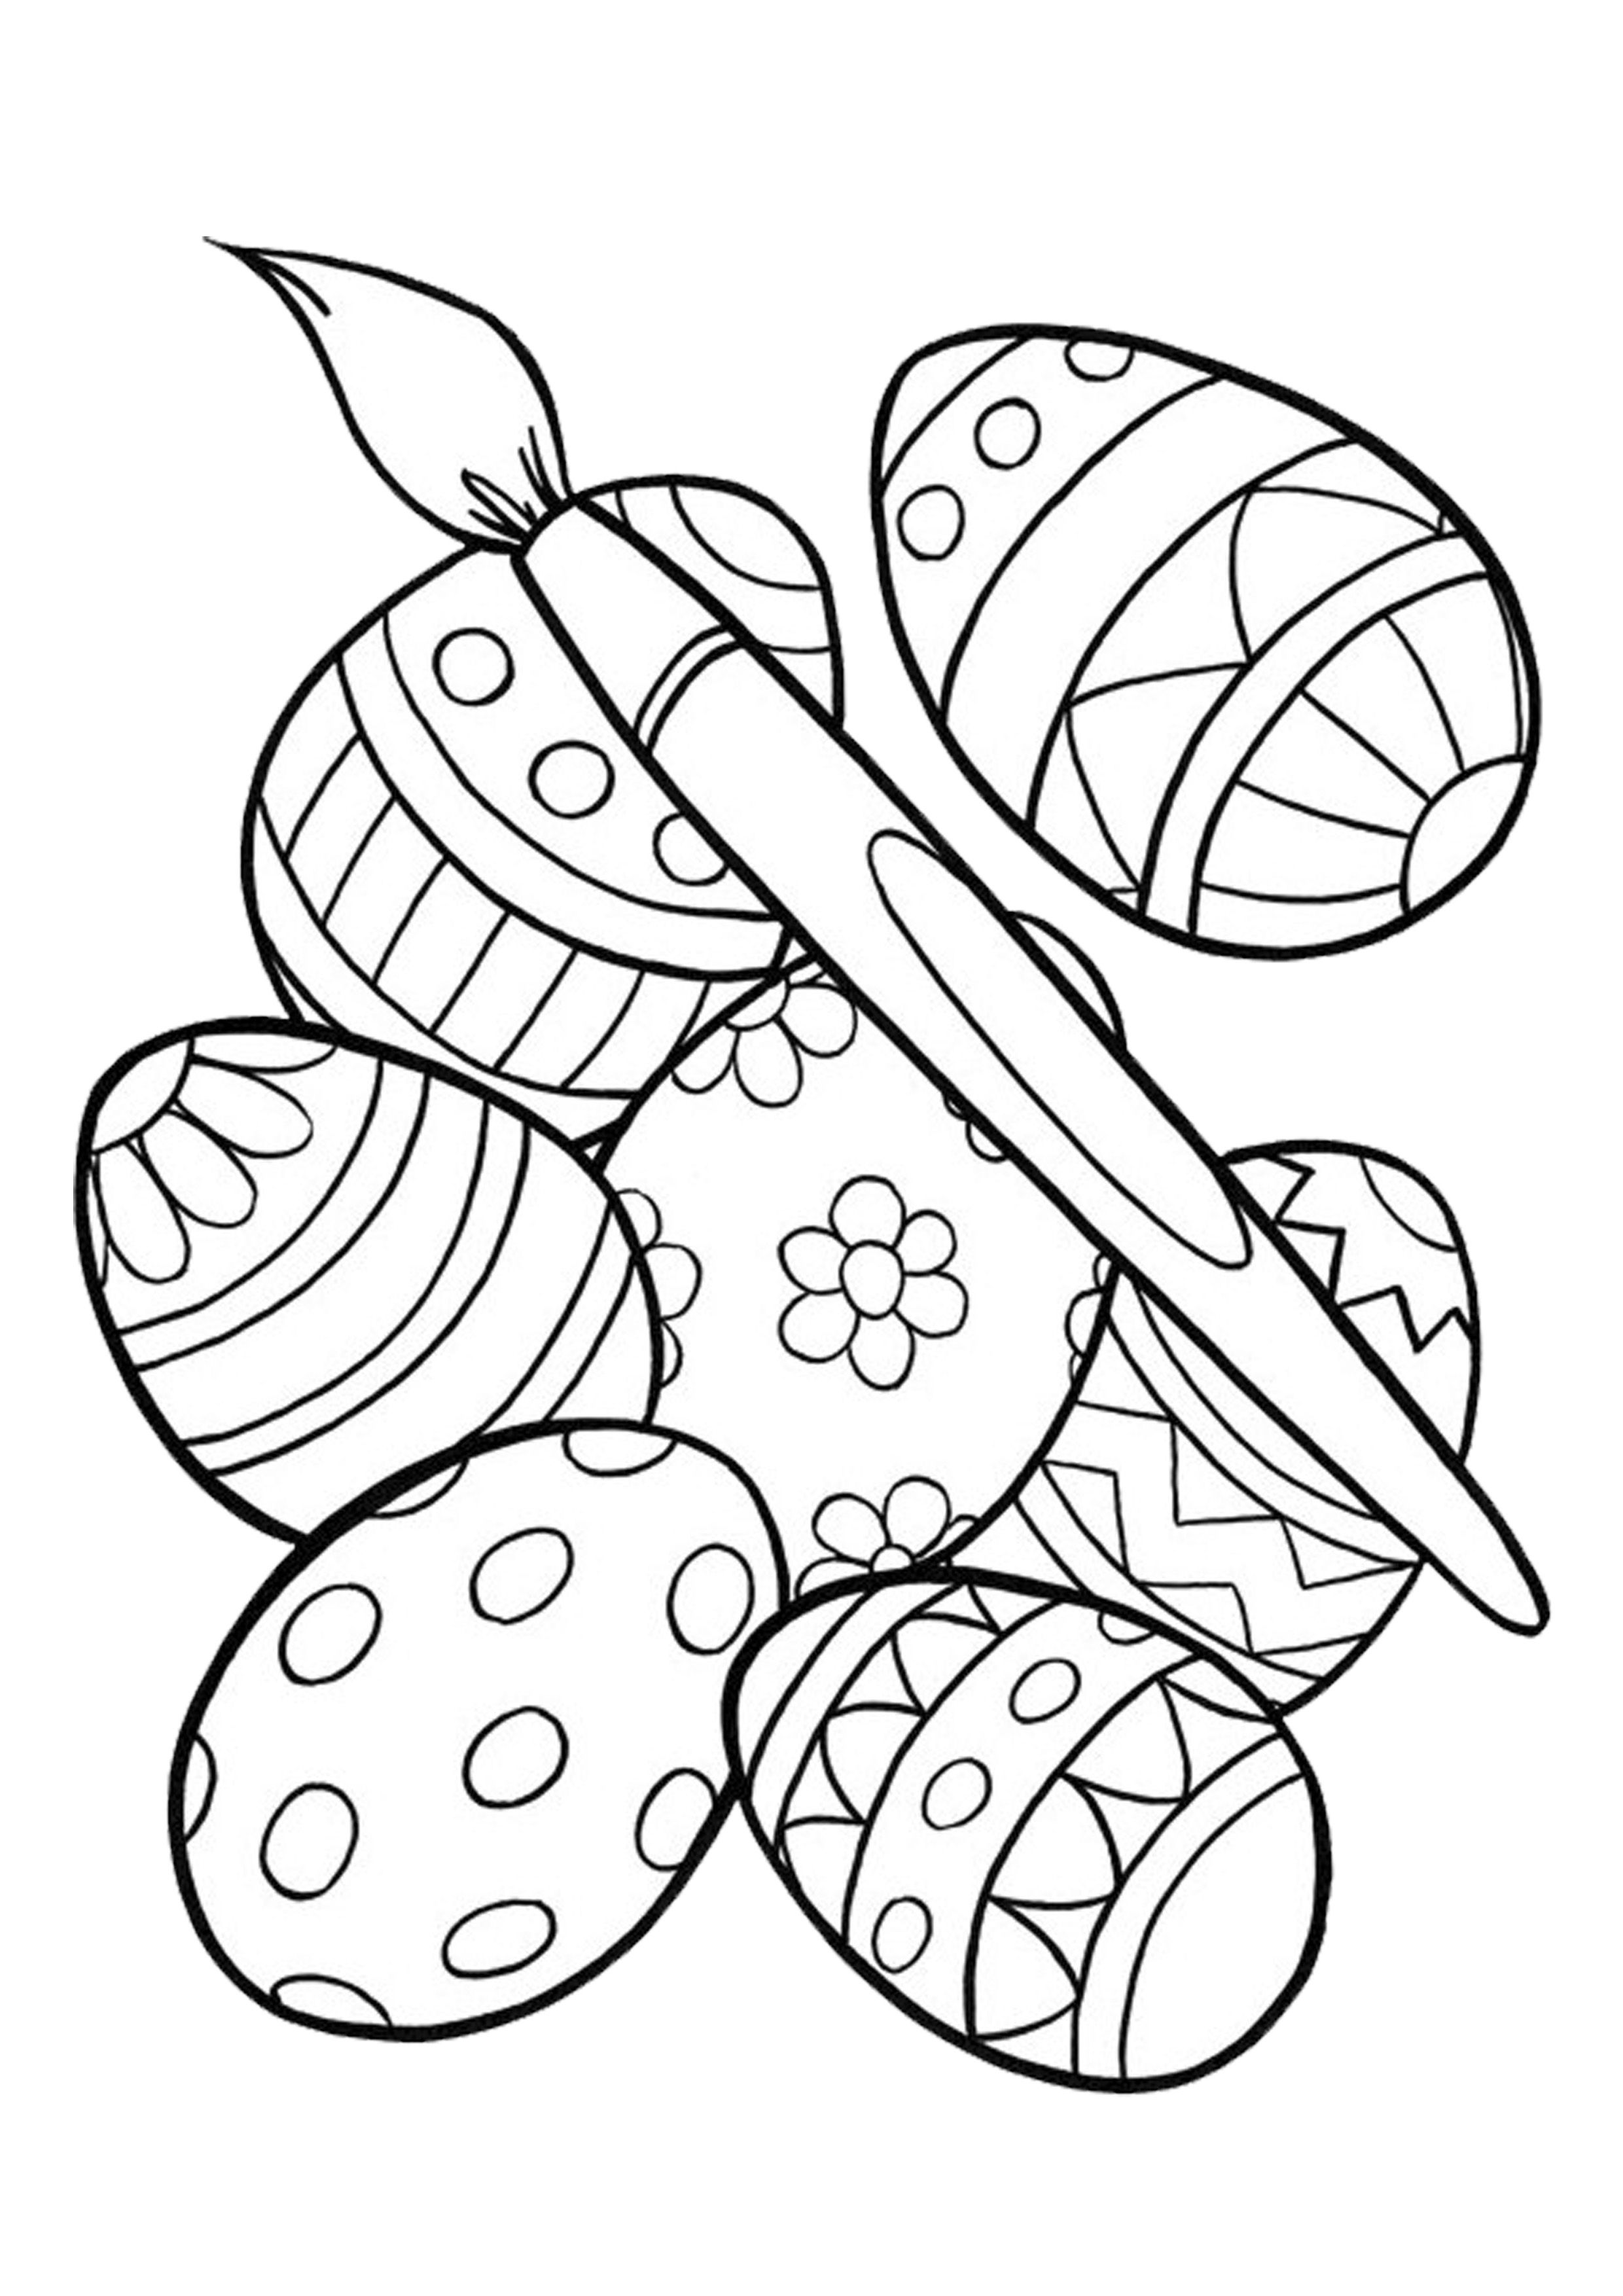 kids easter colouring pages easter bunny coloring pages spring coloring pages kids easter colouring pages